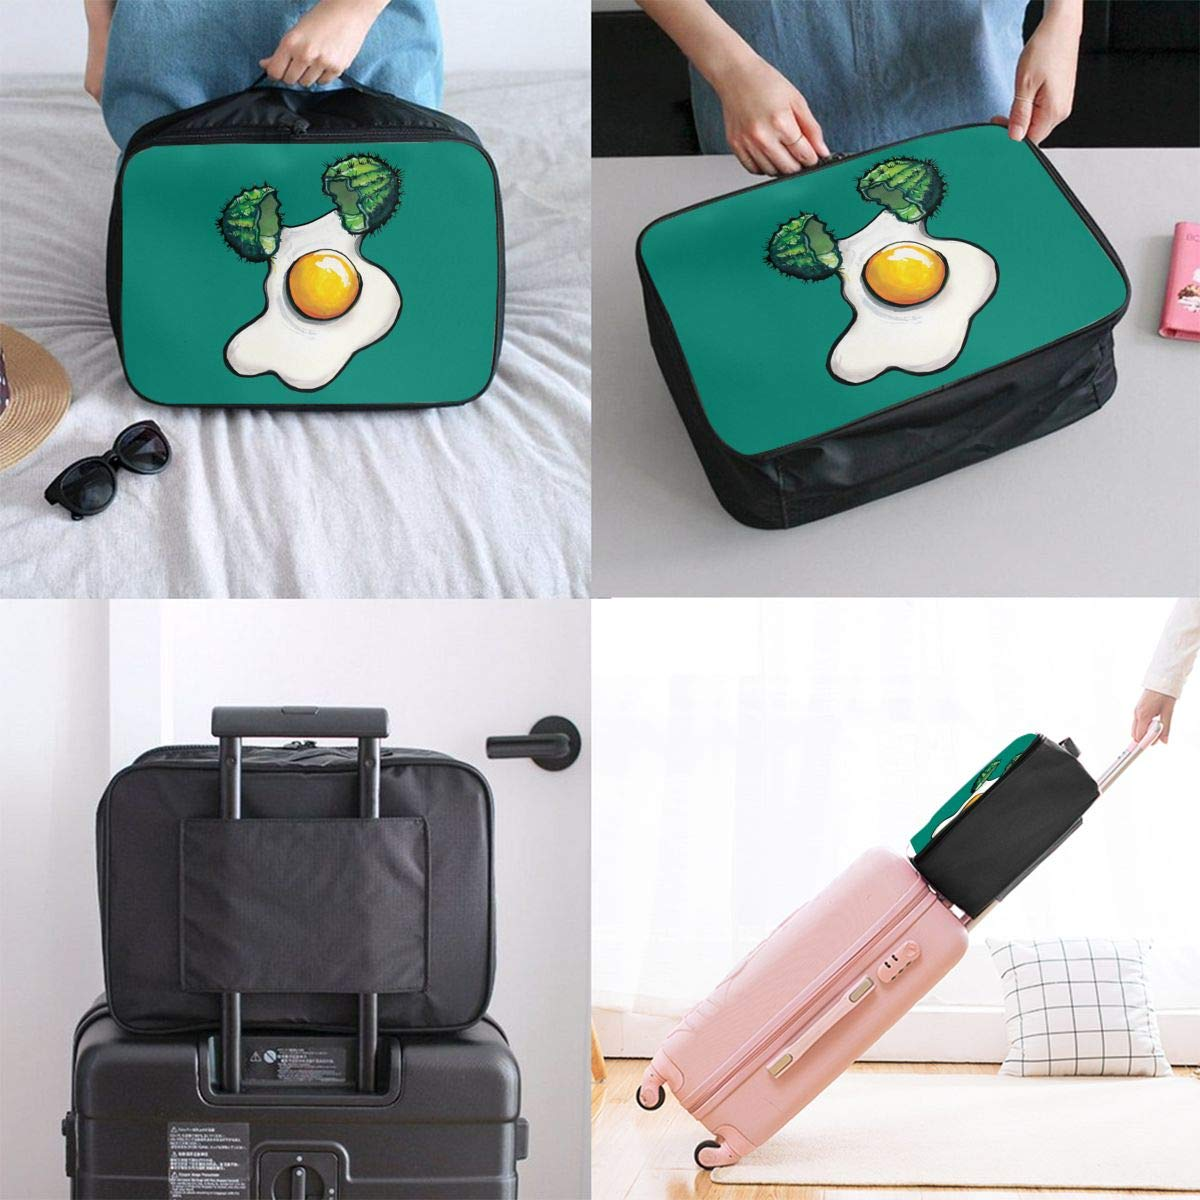 Travel Luggage Duffle Bag Lightweight Portable Handbag Broken Egg Large Capacity Waterproof Foldable Storage Tote